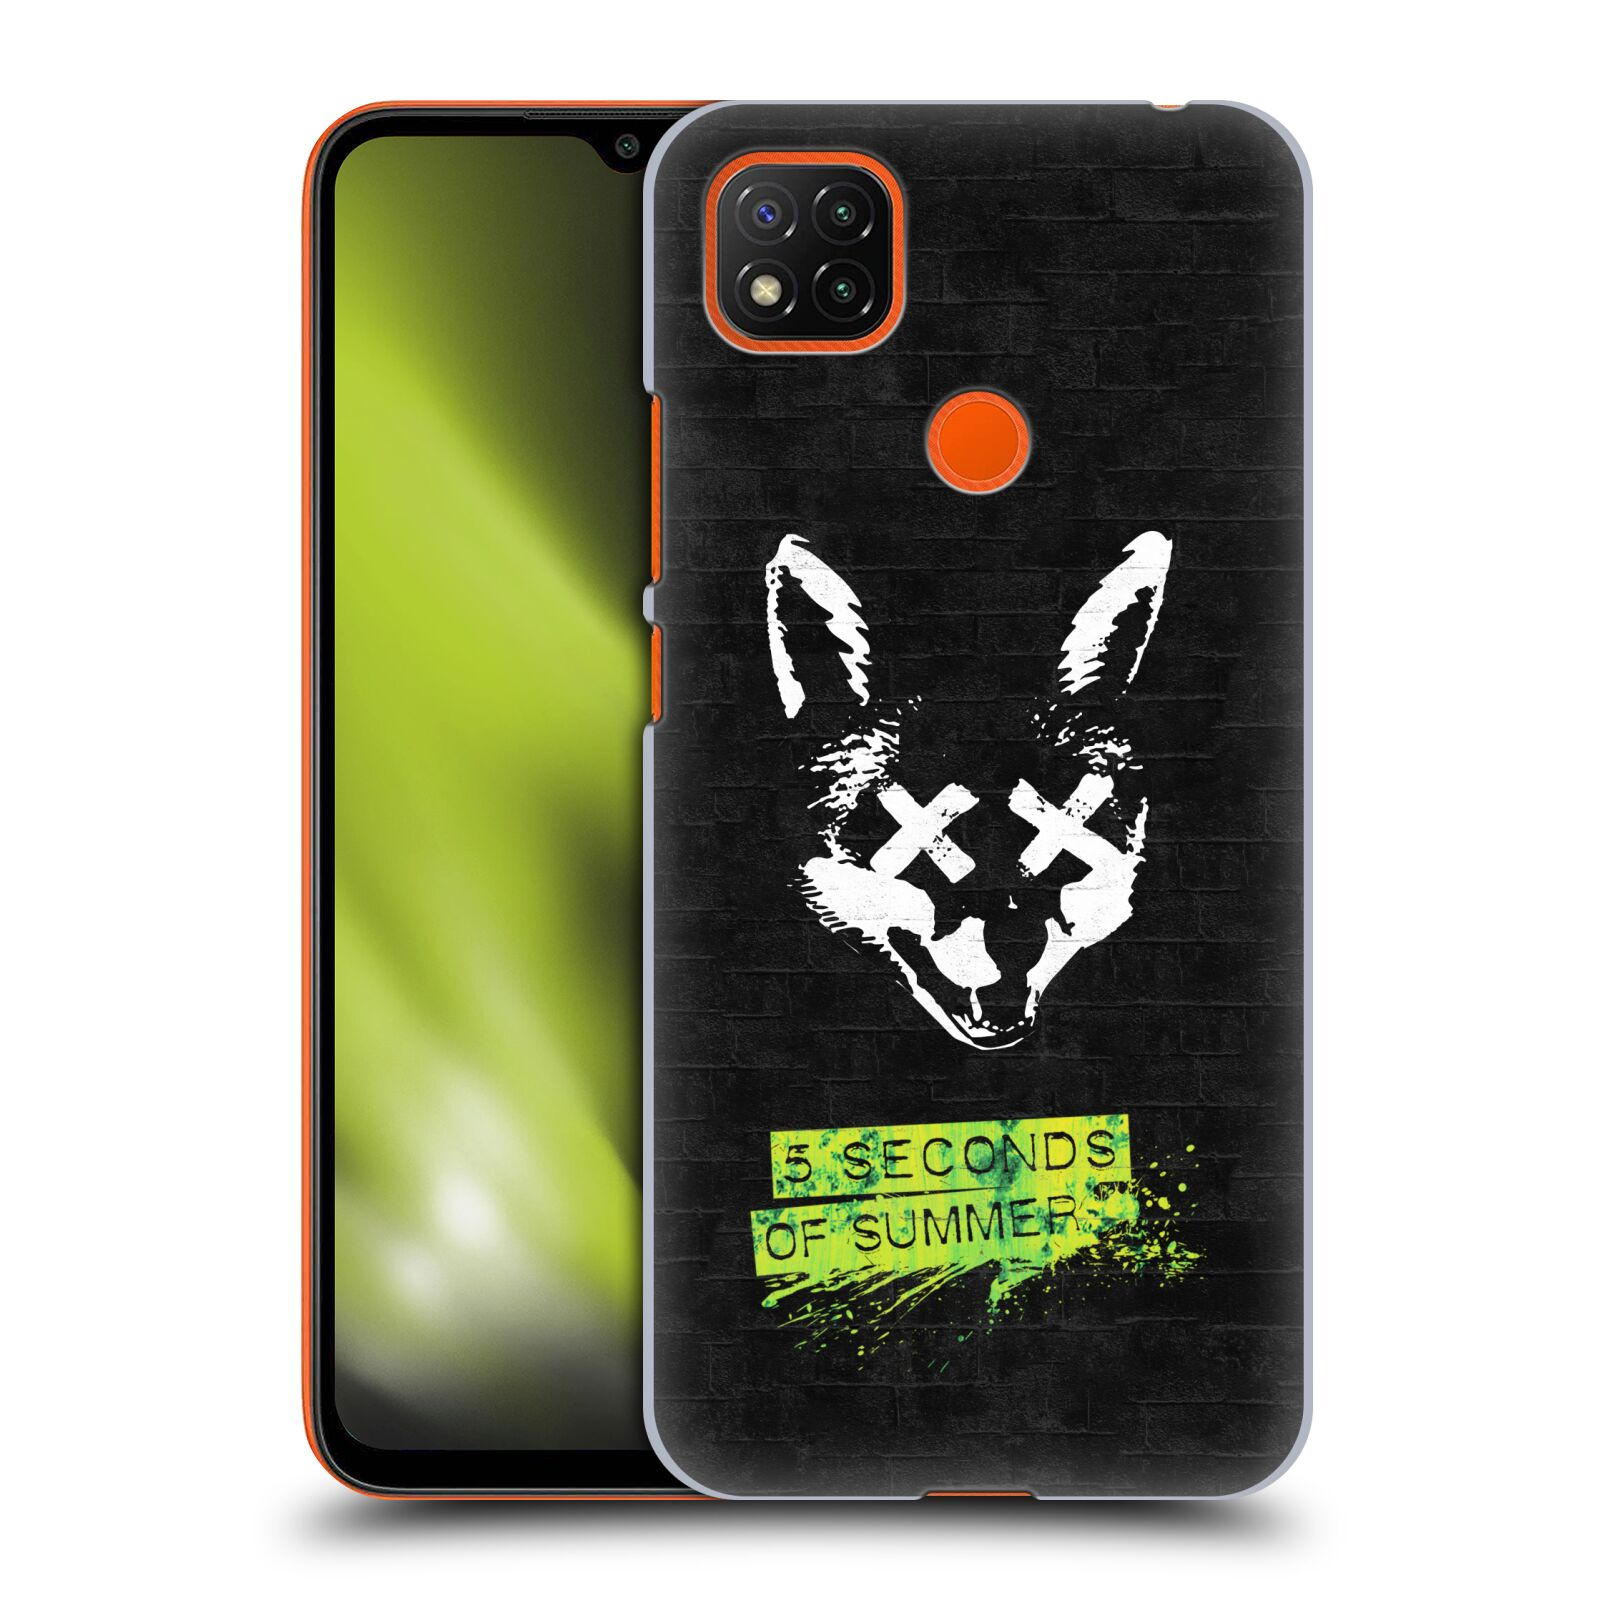 Plastové pouzdro na mobil Xiaomi Redmi 9C - Head Case - 5 Seconds of Summer - Fox